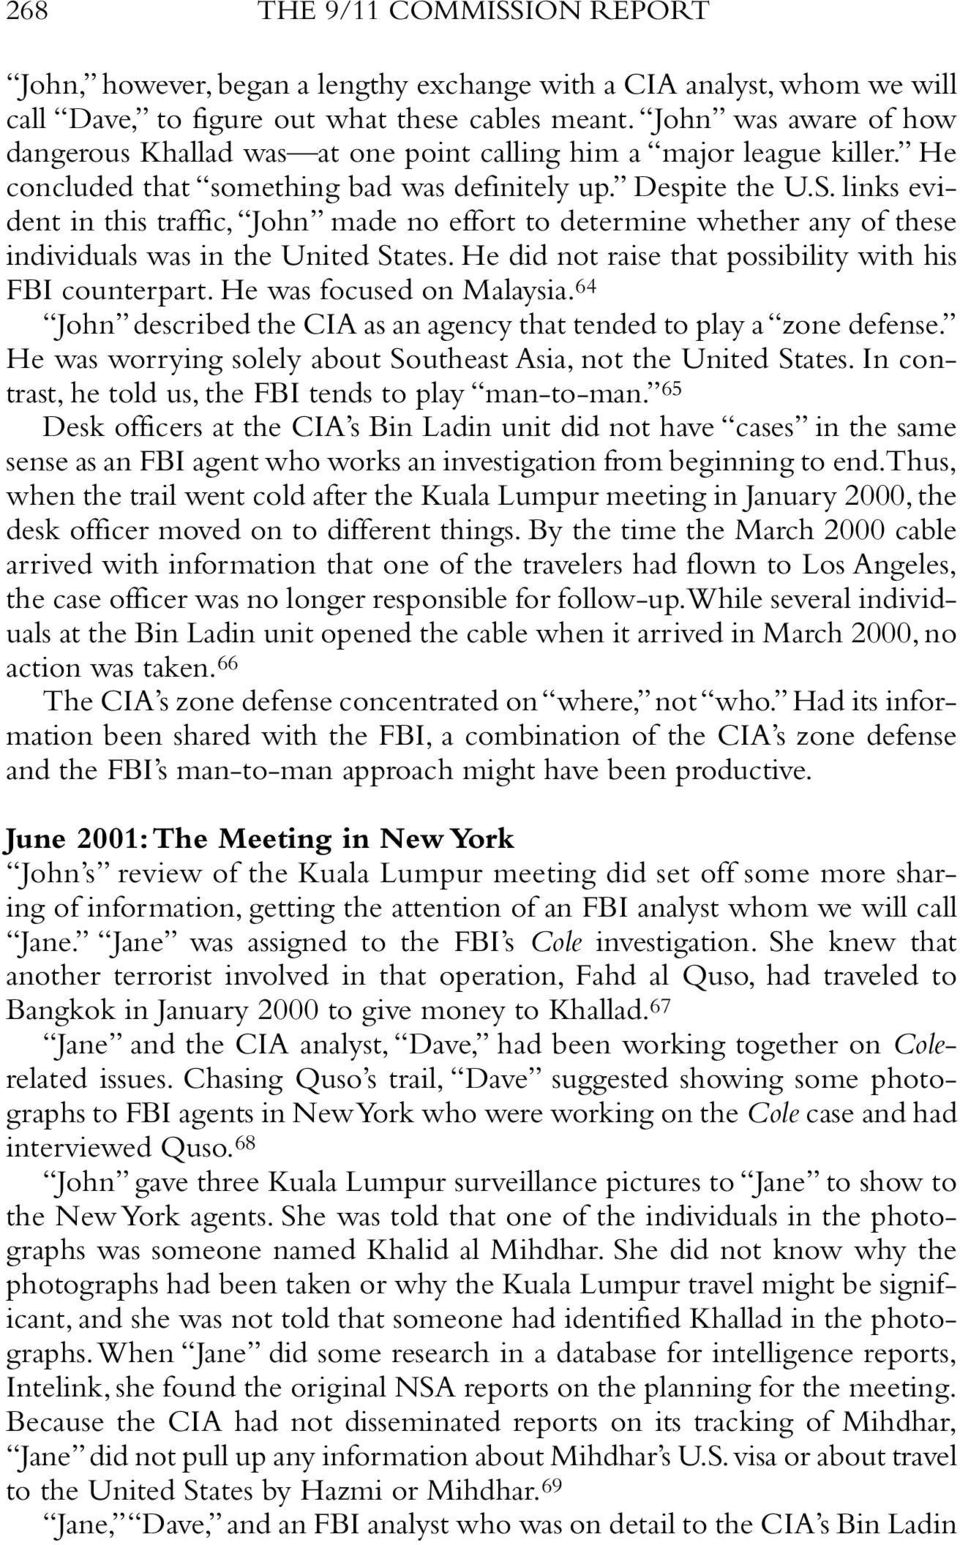 links evident in this traffic, John made no effort to determine whether any of these individuals was in the United States. He did not raise that possibility with his FBI counterpart.